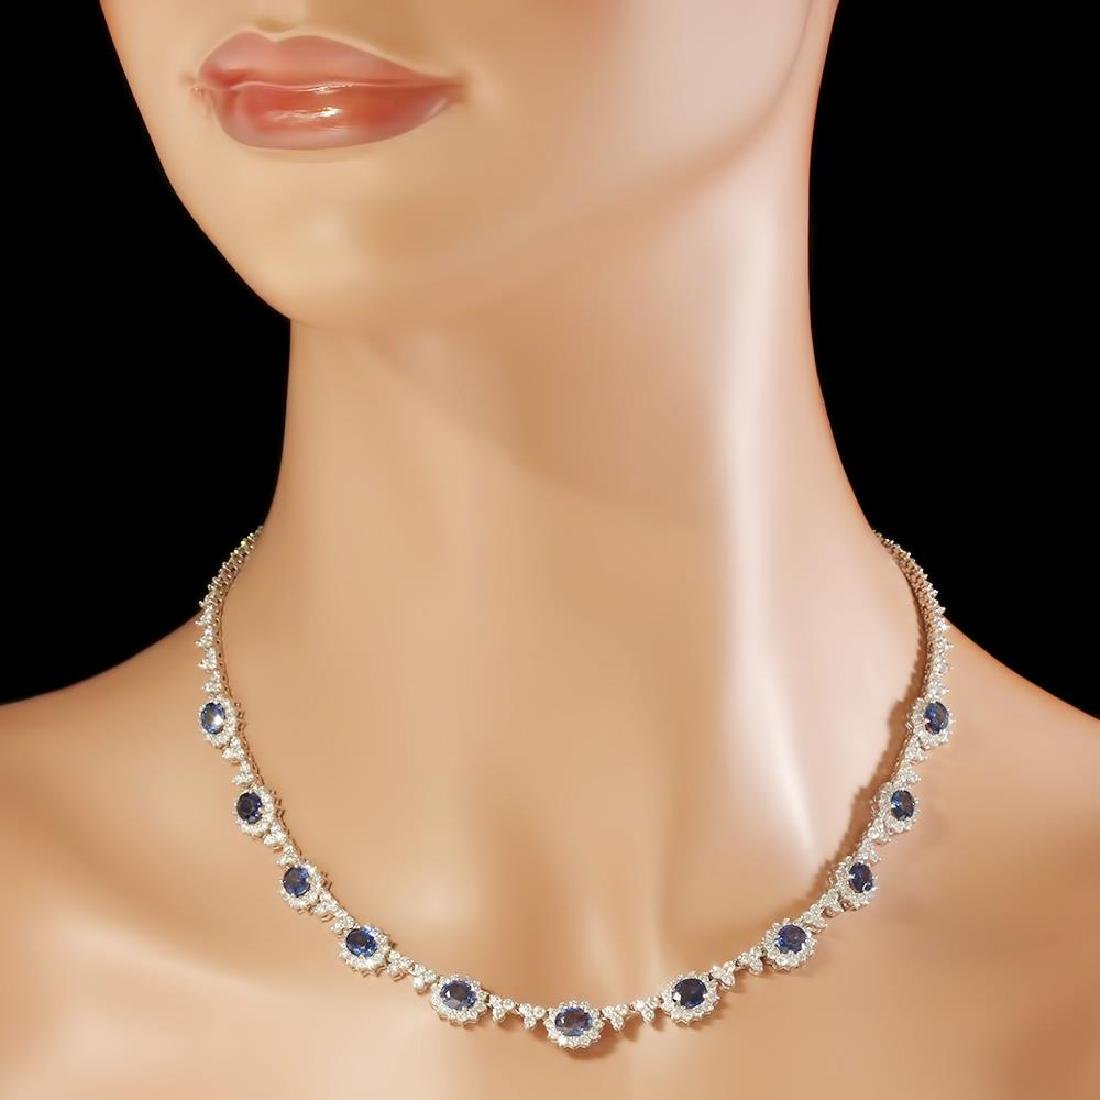 14K Gold 7.88ct Sapphire 8.79cts Diamond Necklace - 3